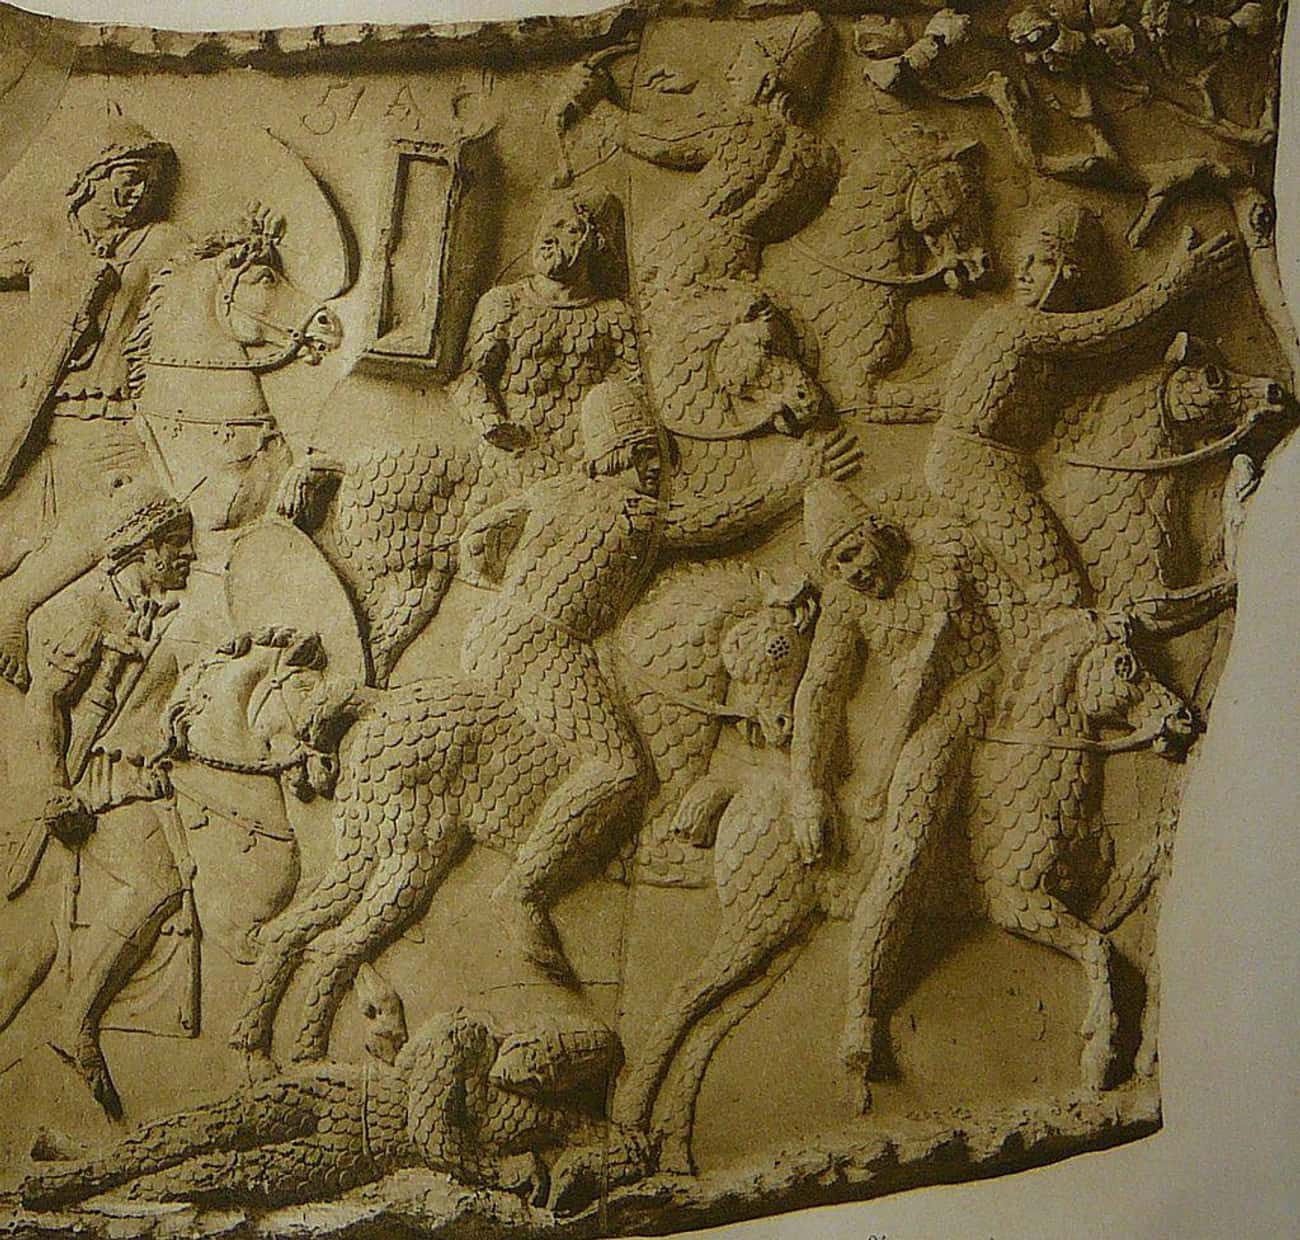 Amage Led A Mission To Slay A  is listed (or ranked) 3 on the list Female Military Leaders Of The Ancient World